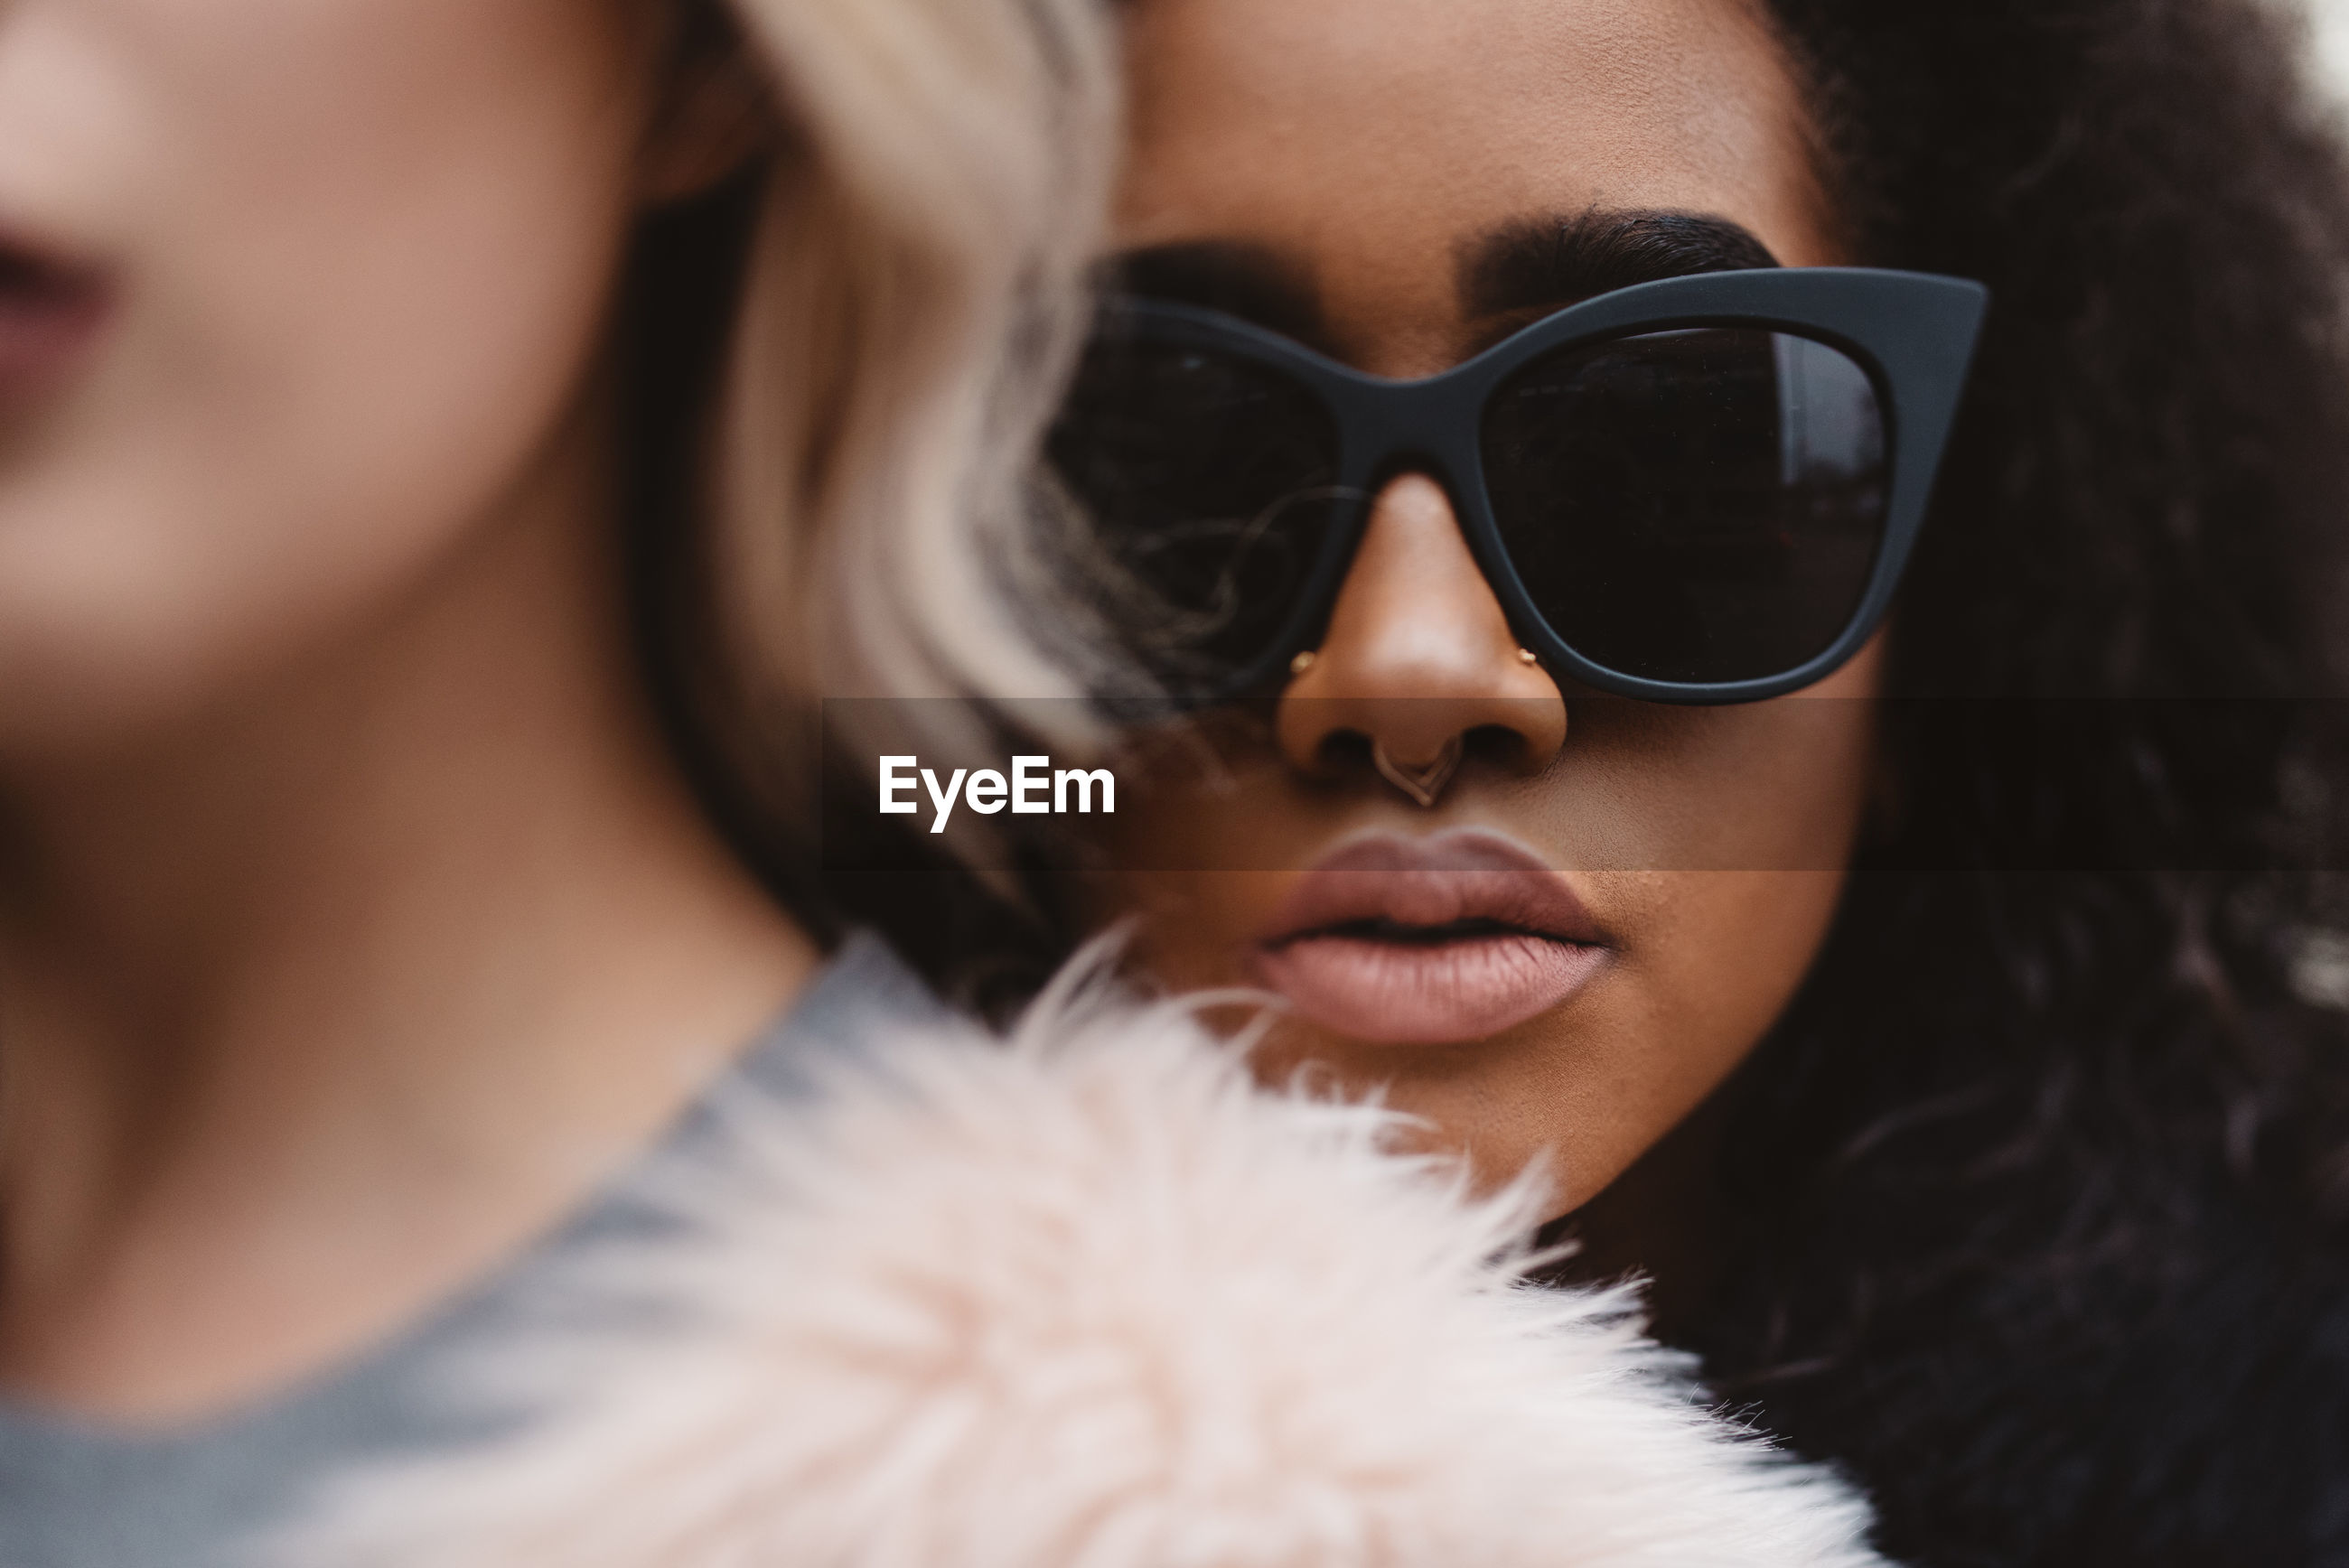 Portrait of woman wearing black sunglasses while standing behind friend